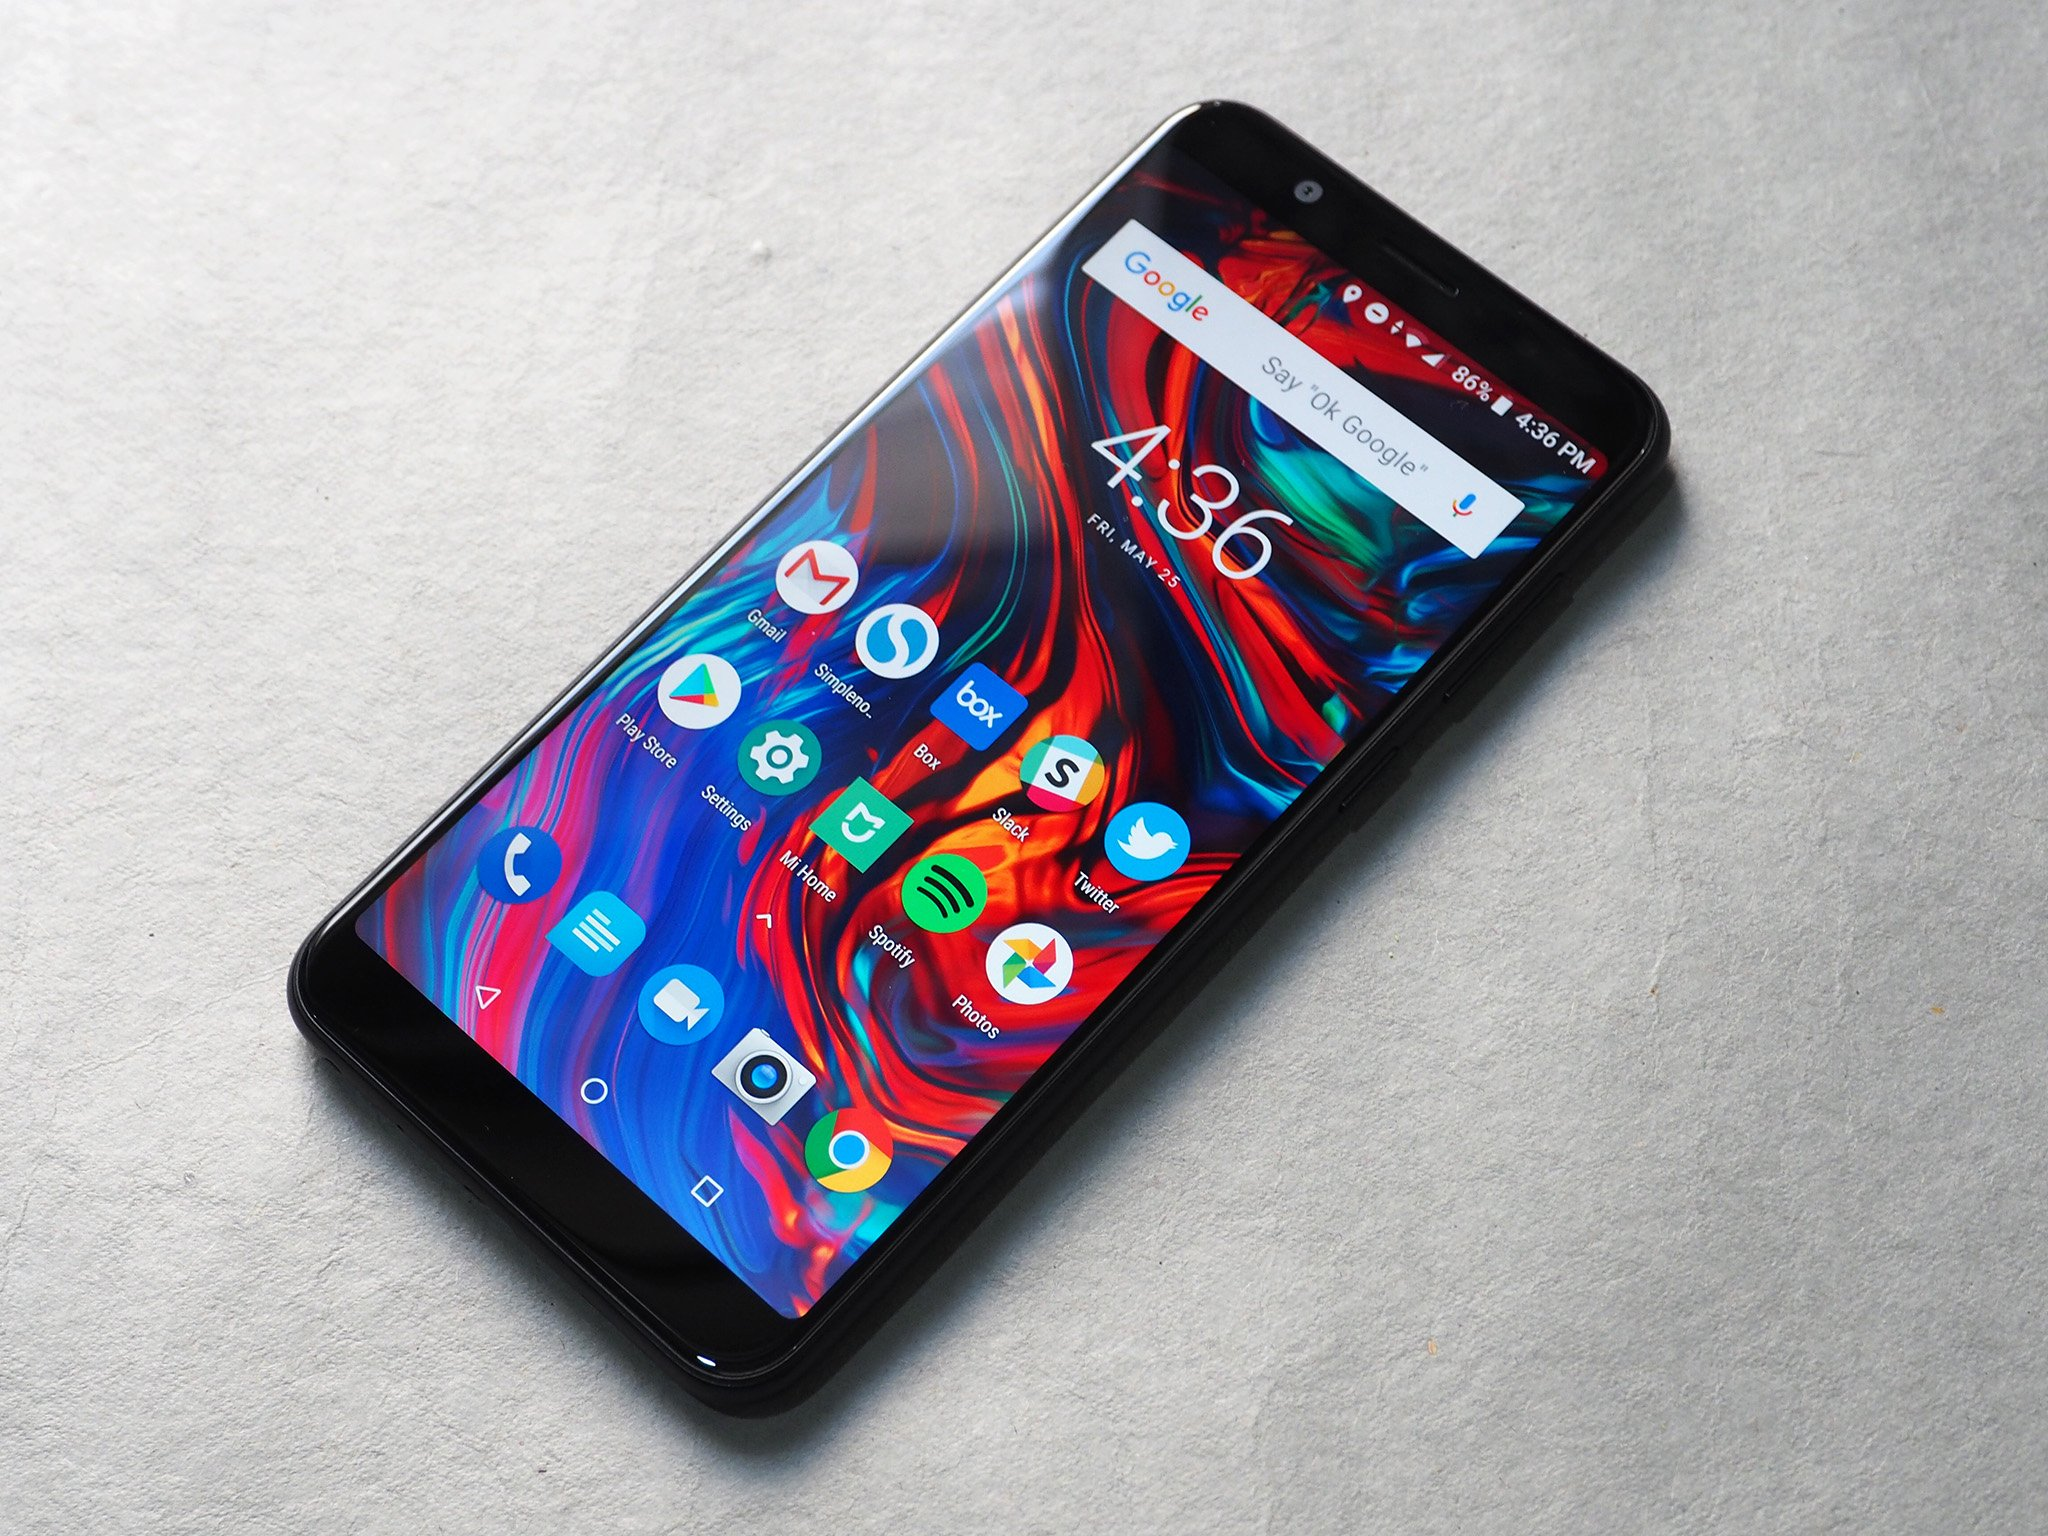 ASUS ZenFone Max Pro M1 review: Outclassing the master | Android Central